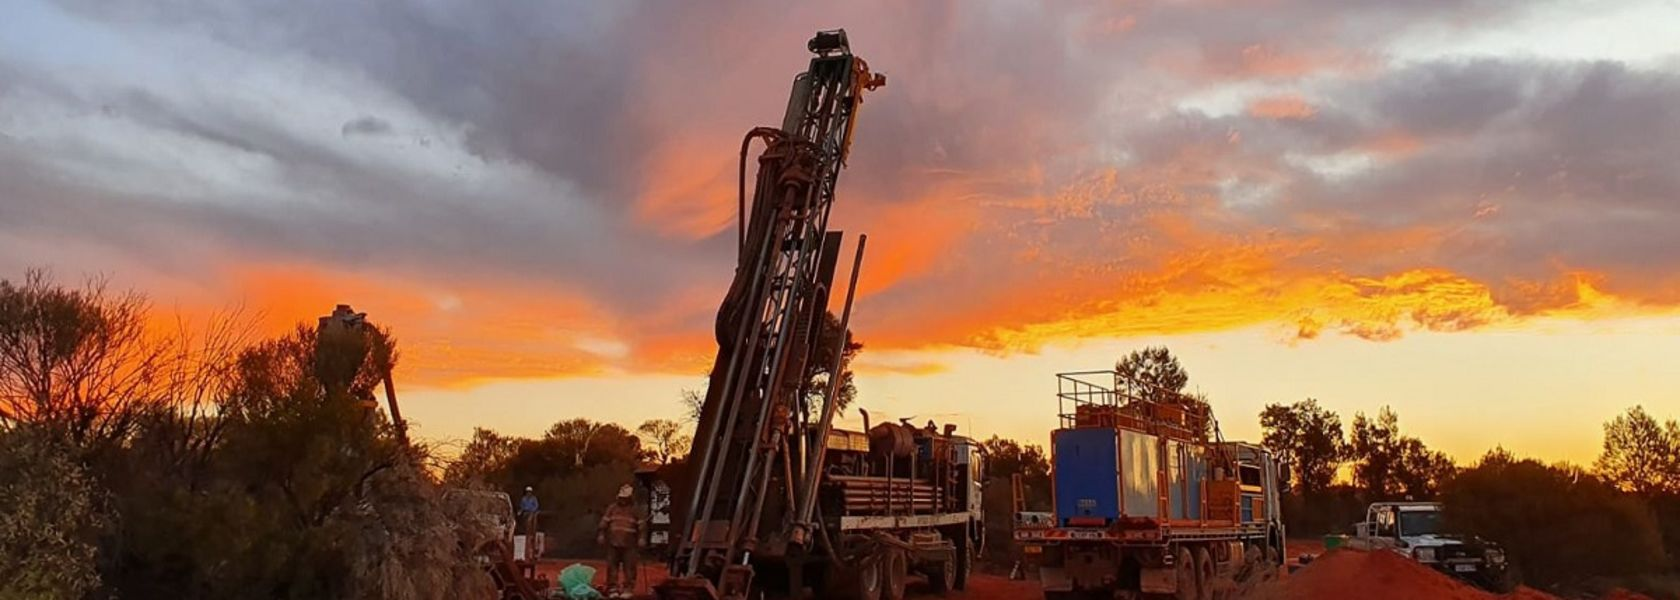 Auroch taps into further nickel potential